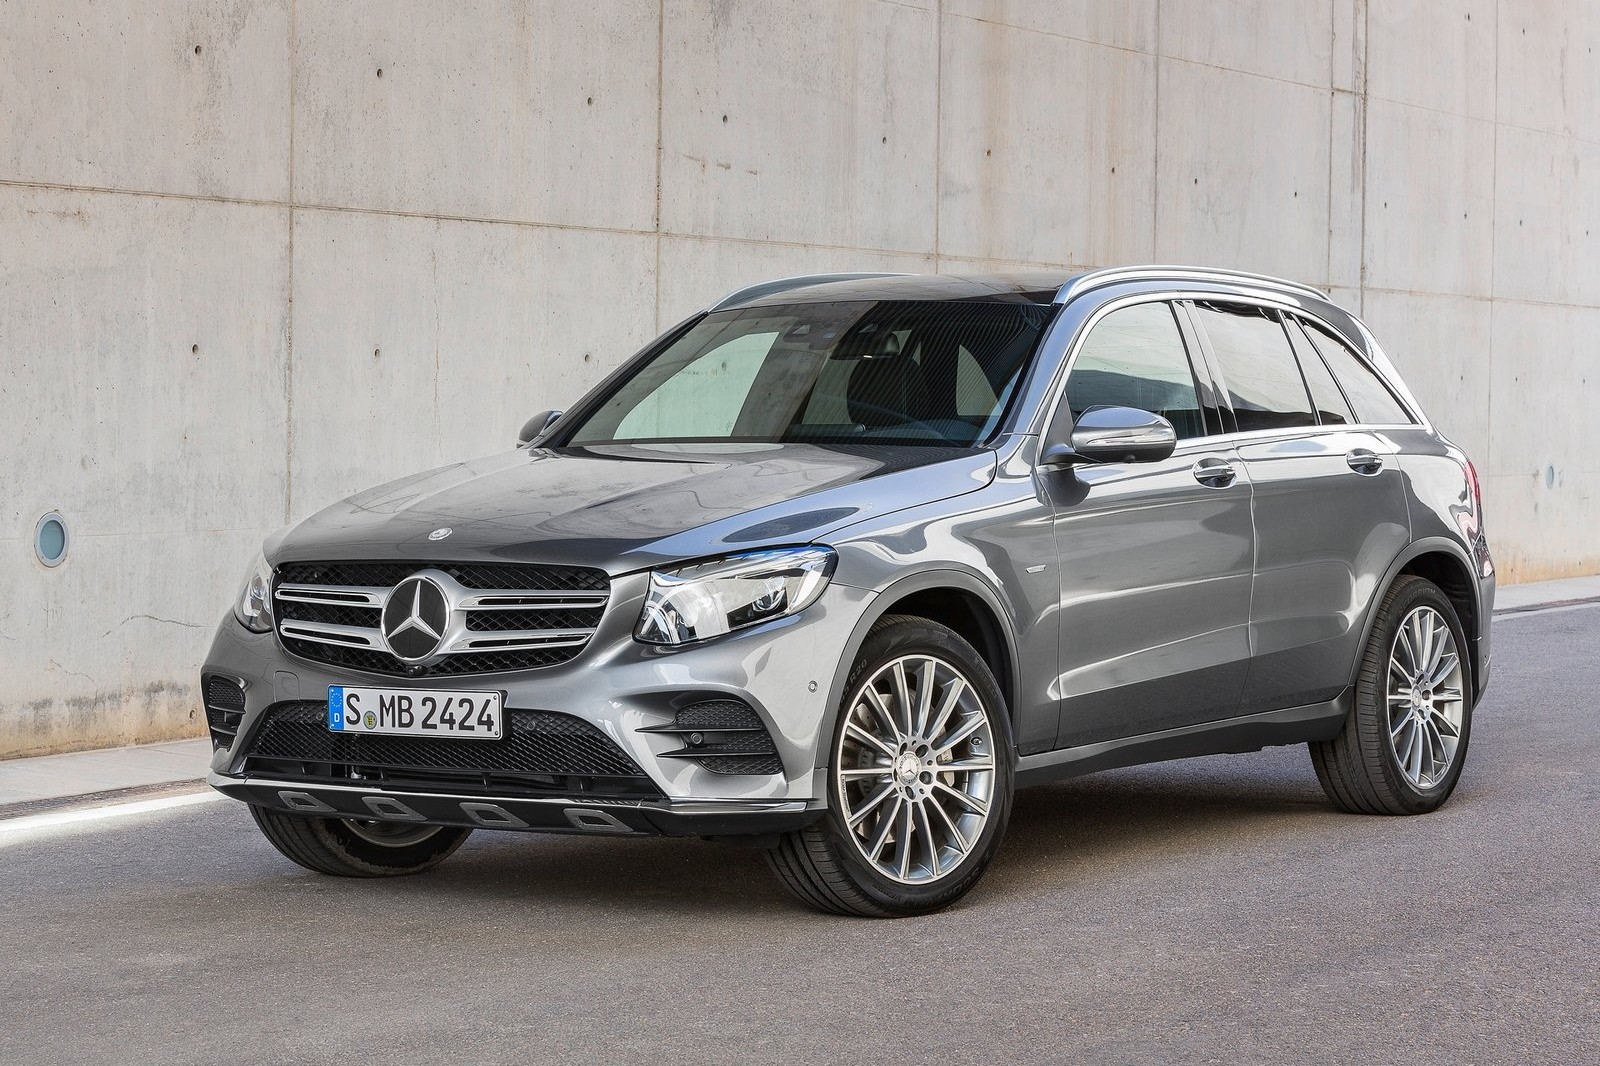 Mercedes-Benz had two vehicles making their first appearances at a Canadian auto show. One is the GLC-Class, the latest version of its compact crossover line, formerly known as the GLK...